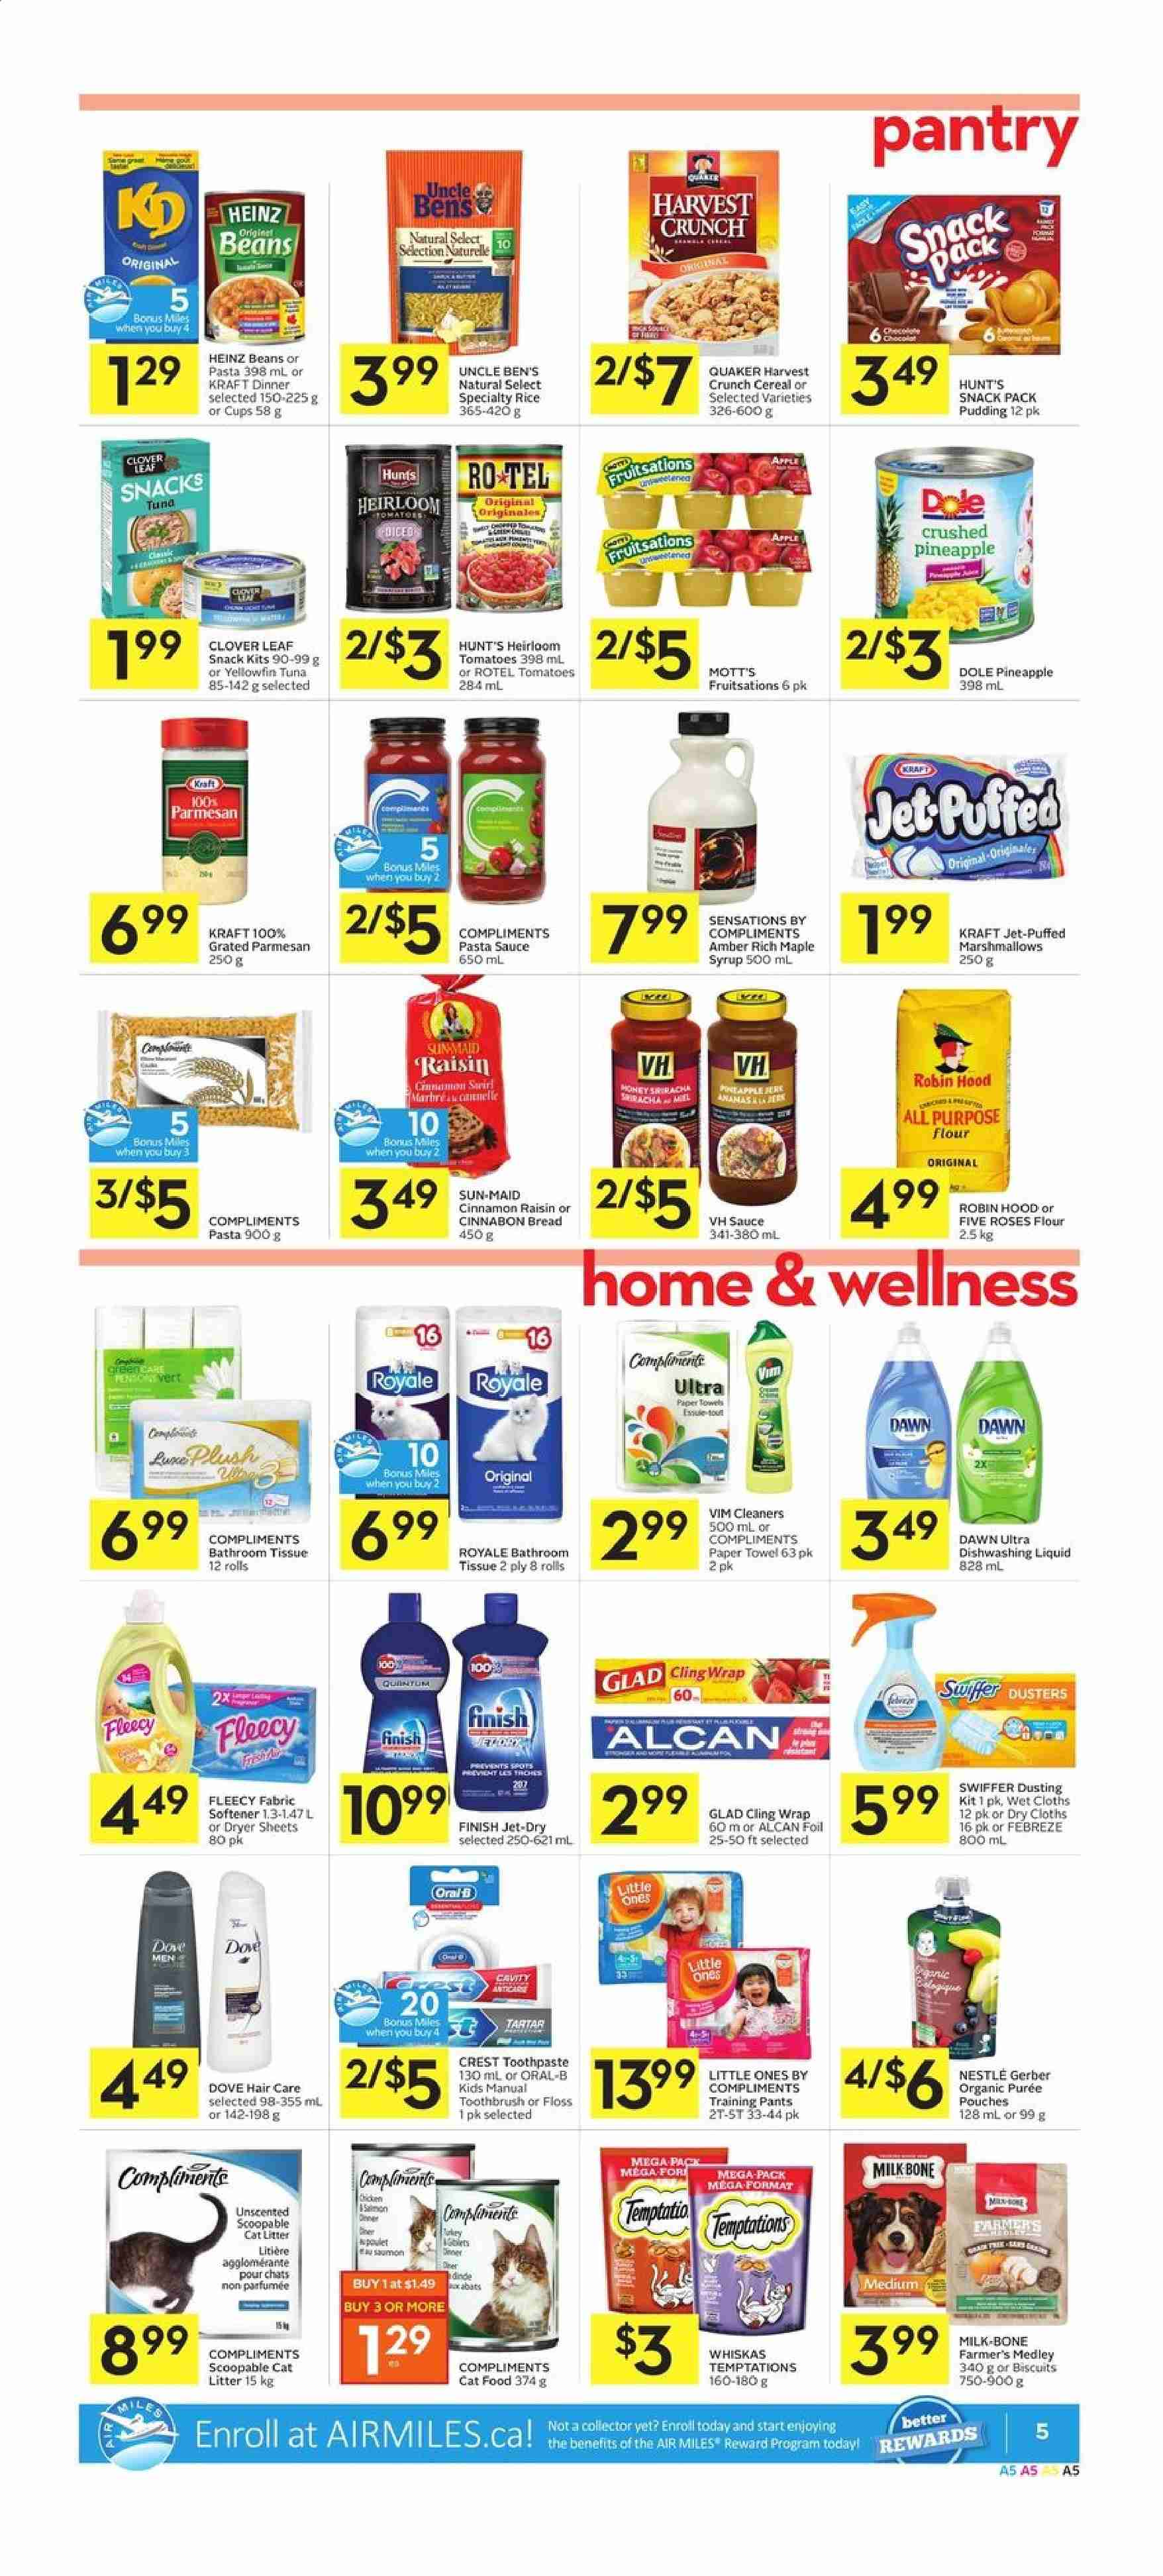 Foodland Flyer  - February 13, 2020 - February 19, 2020. Page 5.